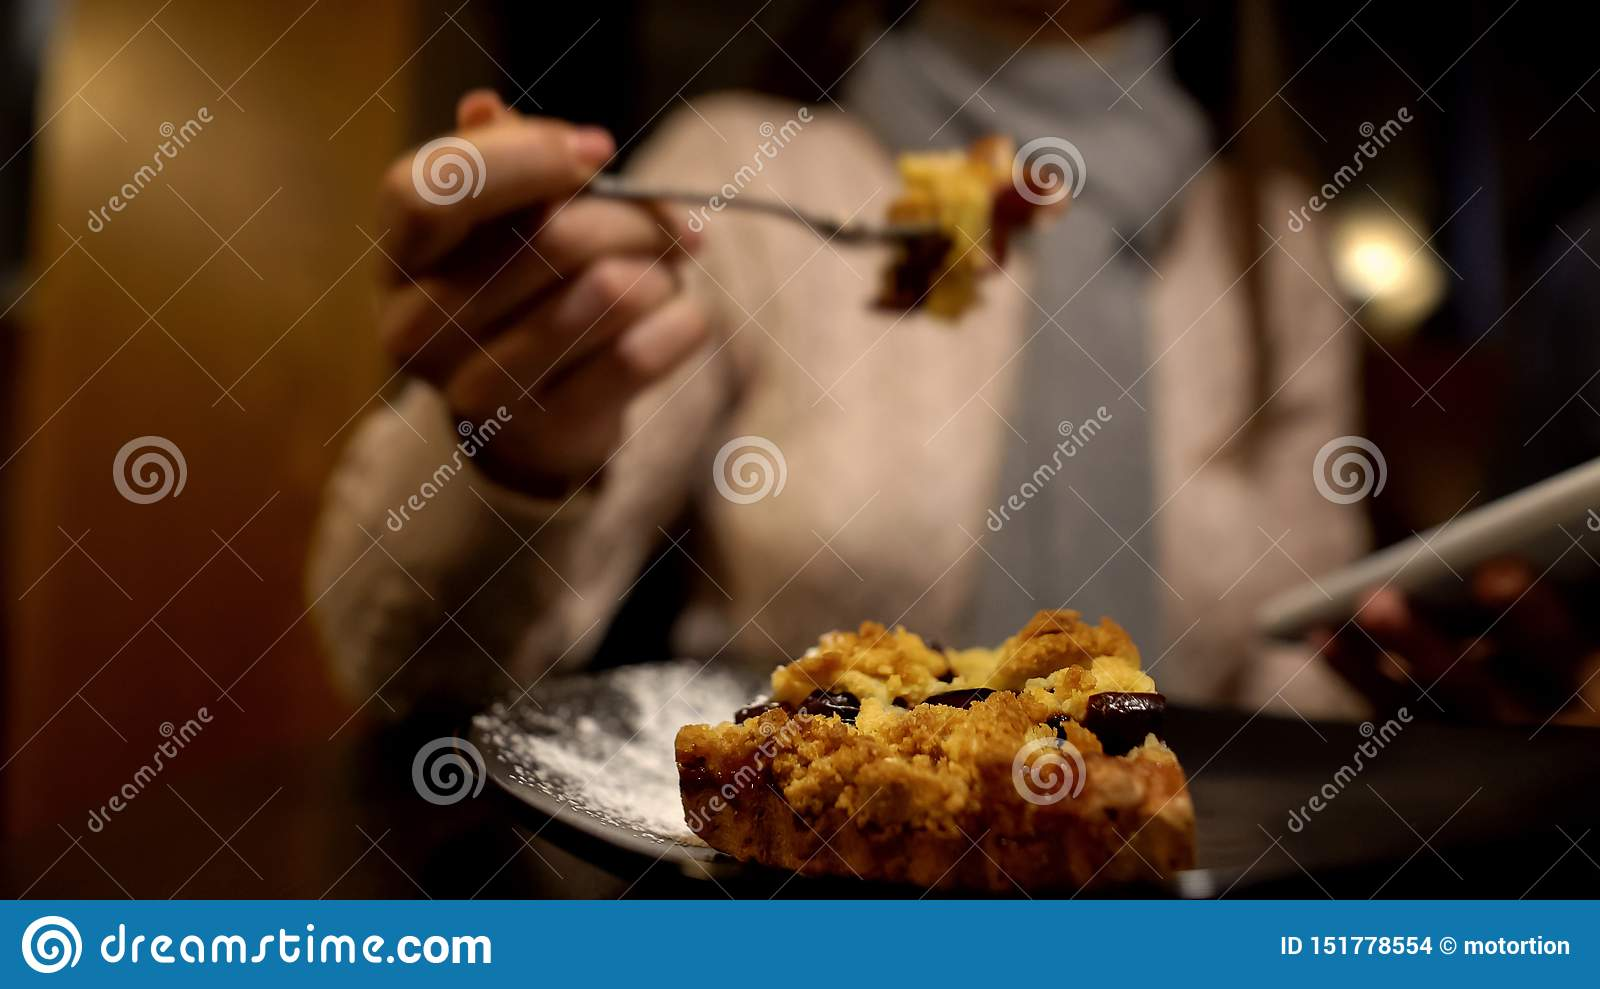 Young lady eating tasty pie and using smartphone, enjoying lunch time alone